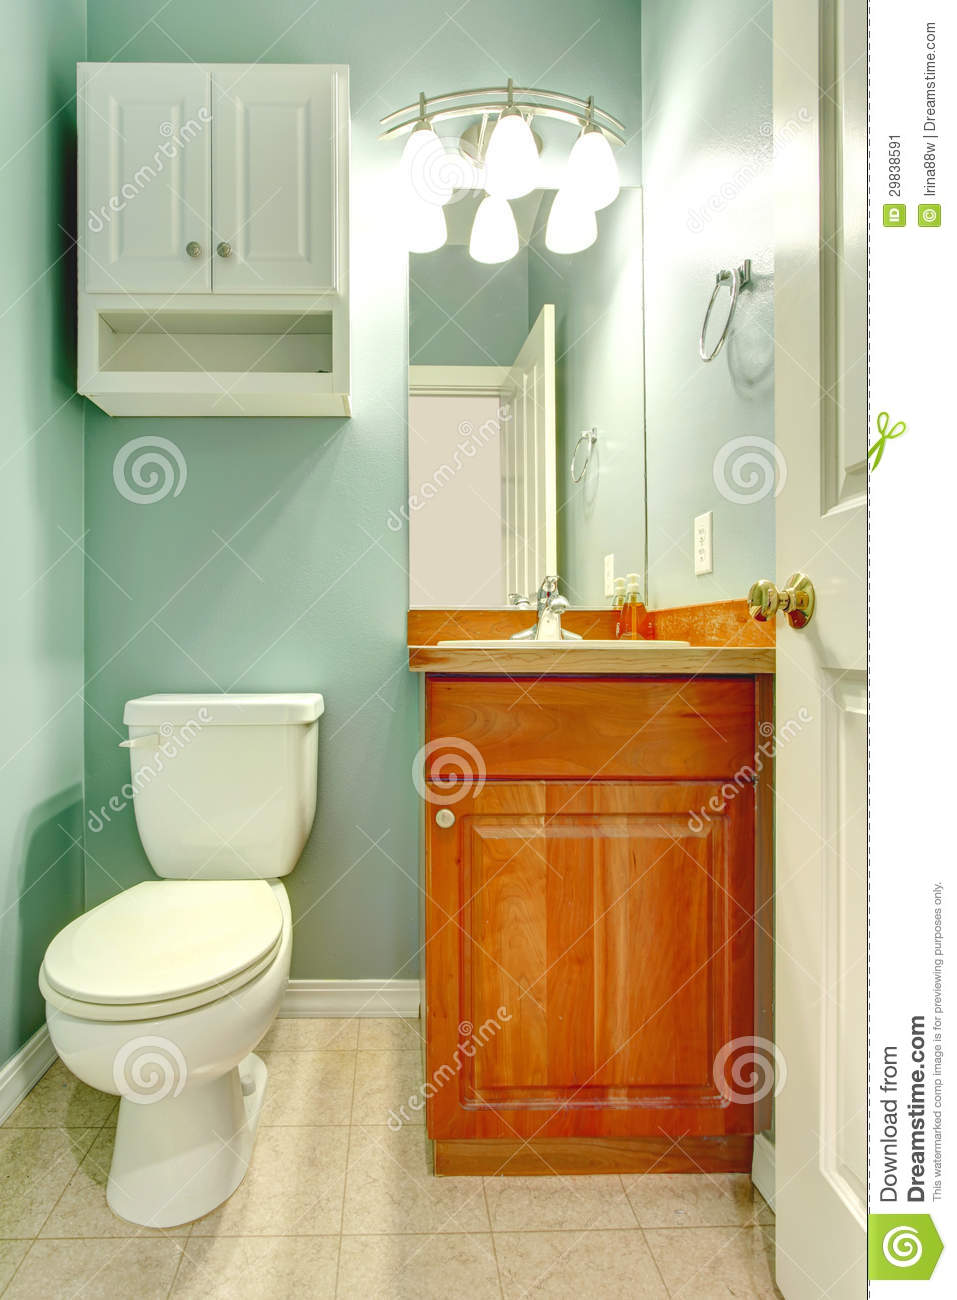 Gabinetes De Baño Pr:Mint Green Color Bathroom